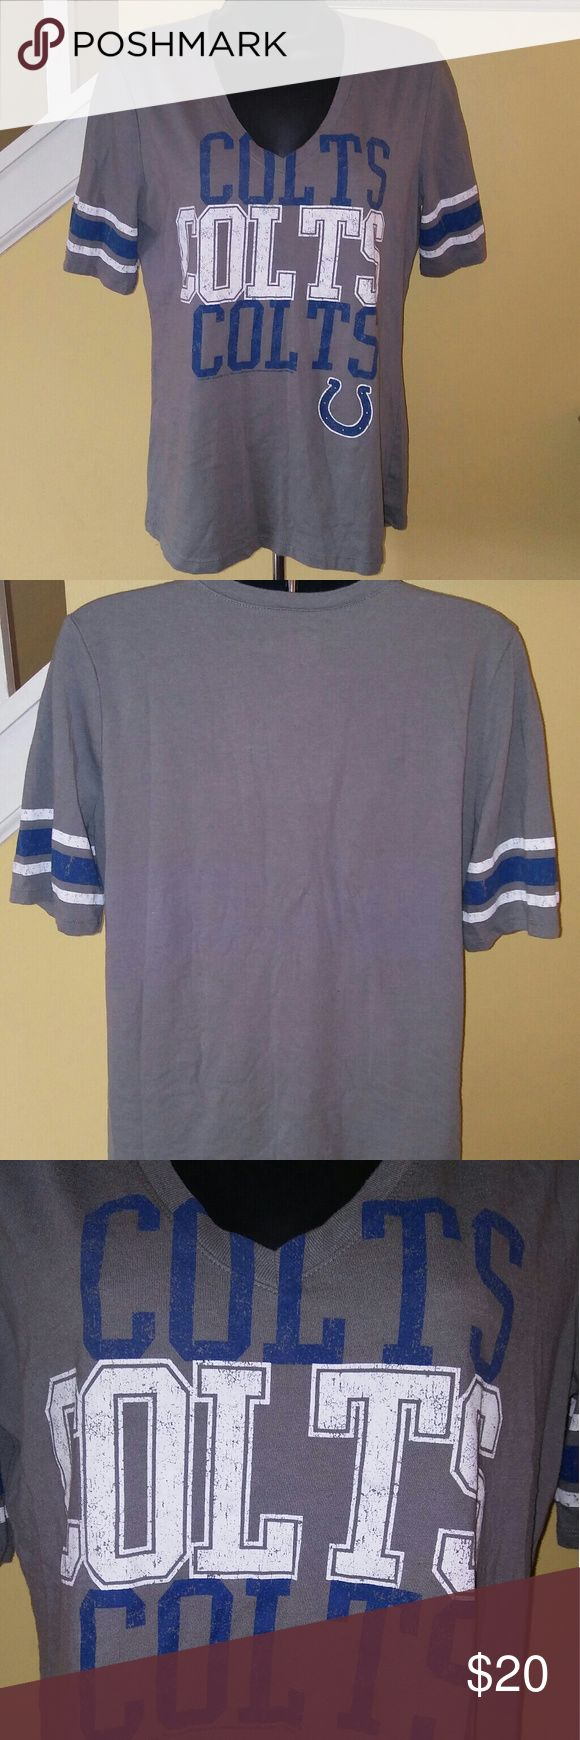 NFL Colts Women's Large V-Neck T-Shirt 50% cotton 50% polyester. NFL gray T-Shirt. Excellent condition. No defects. nfl Tops Tees - Short Sleeve